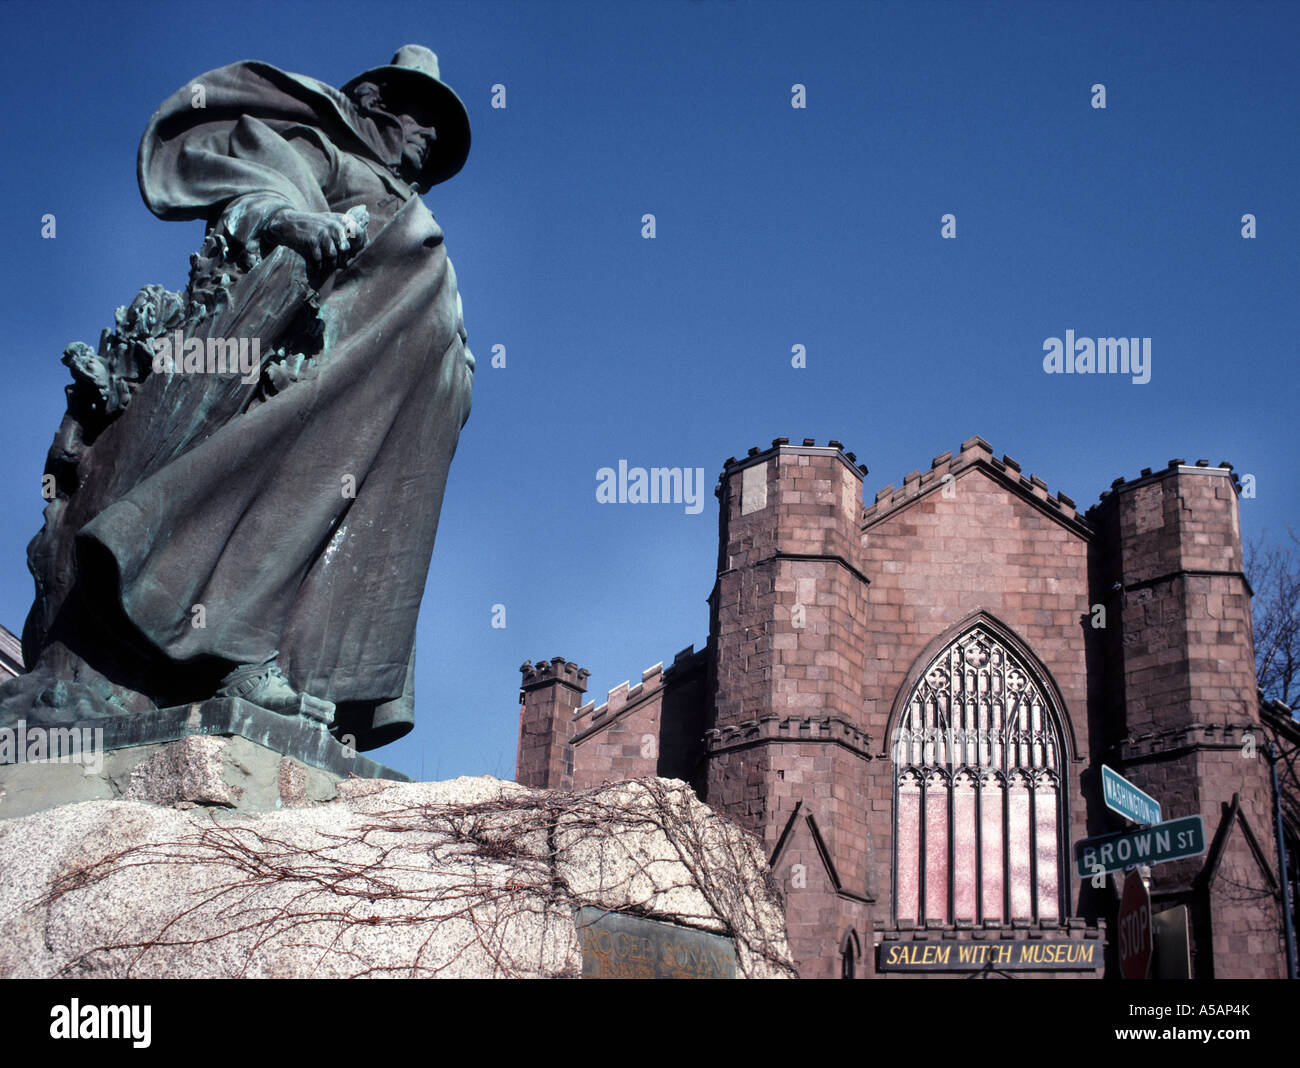 Statue of Roger Conant  Salem Witch Museum  Salem Massachusetts - Stock Image